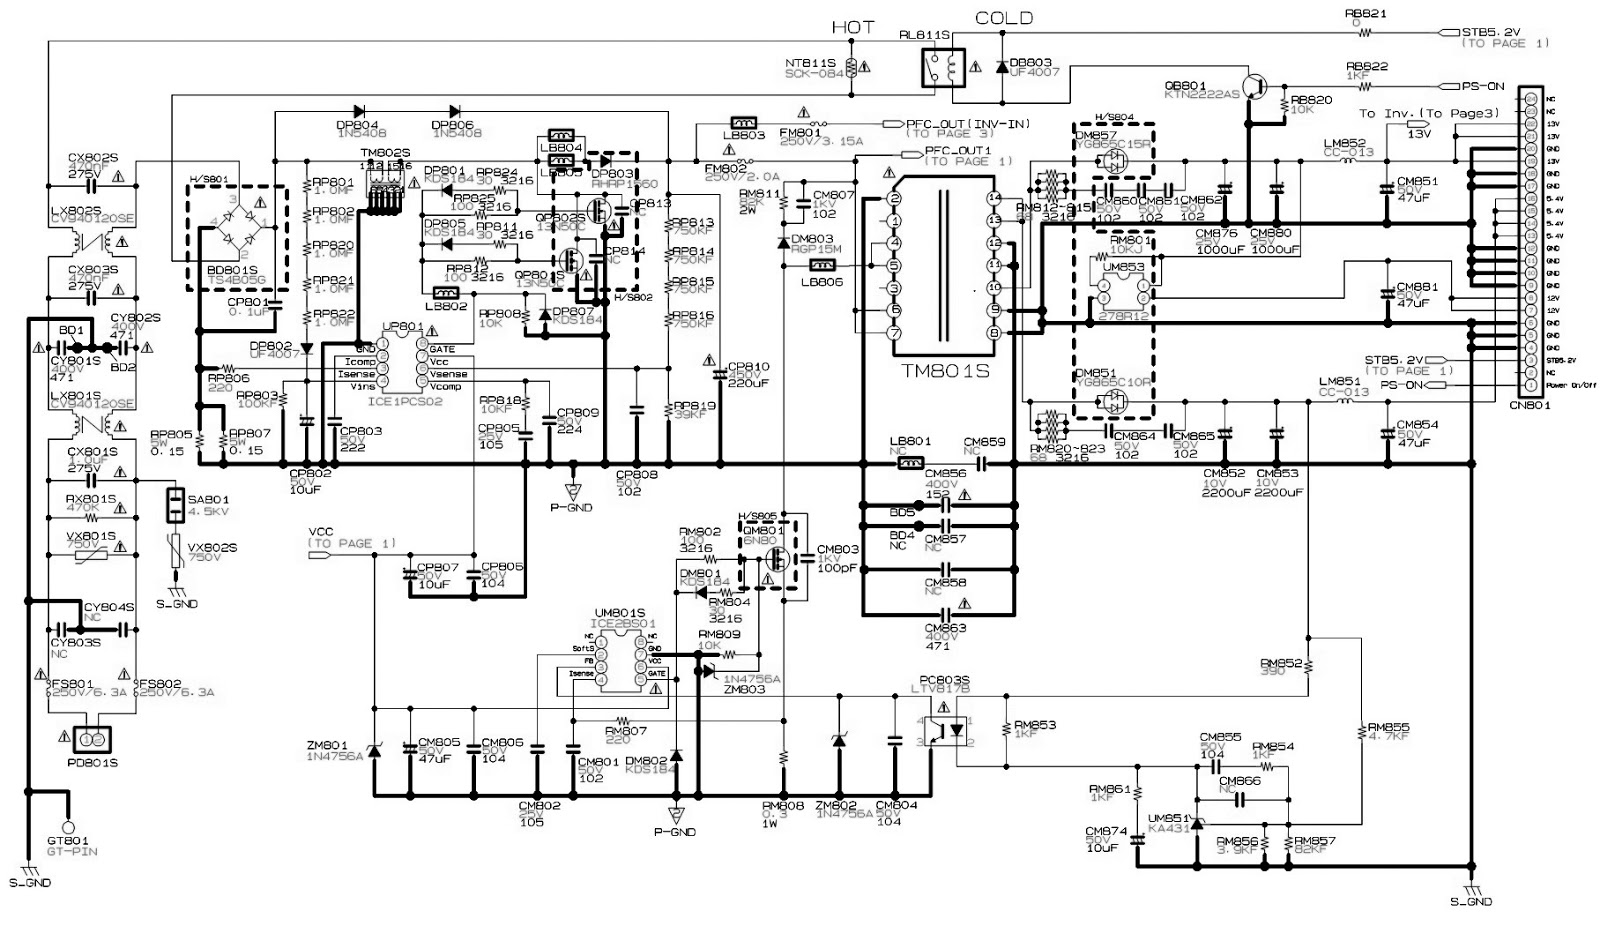 schematic for samsung tvs